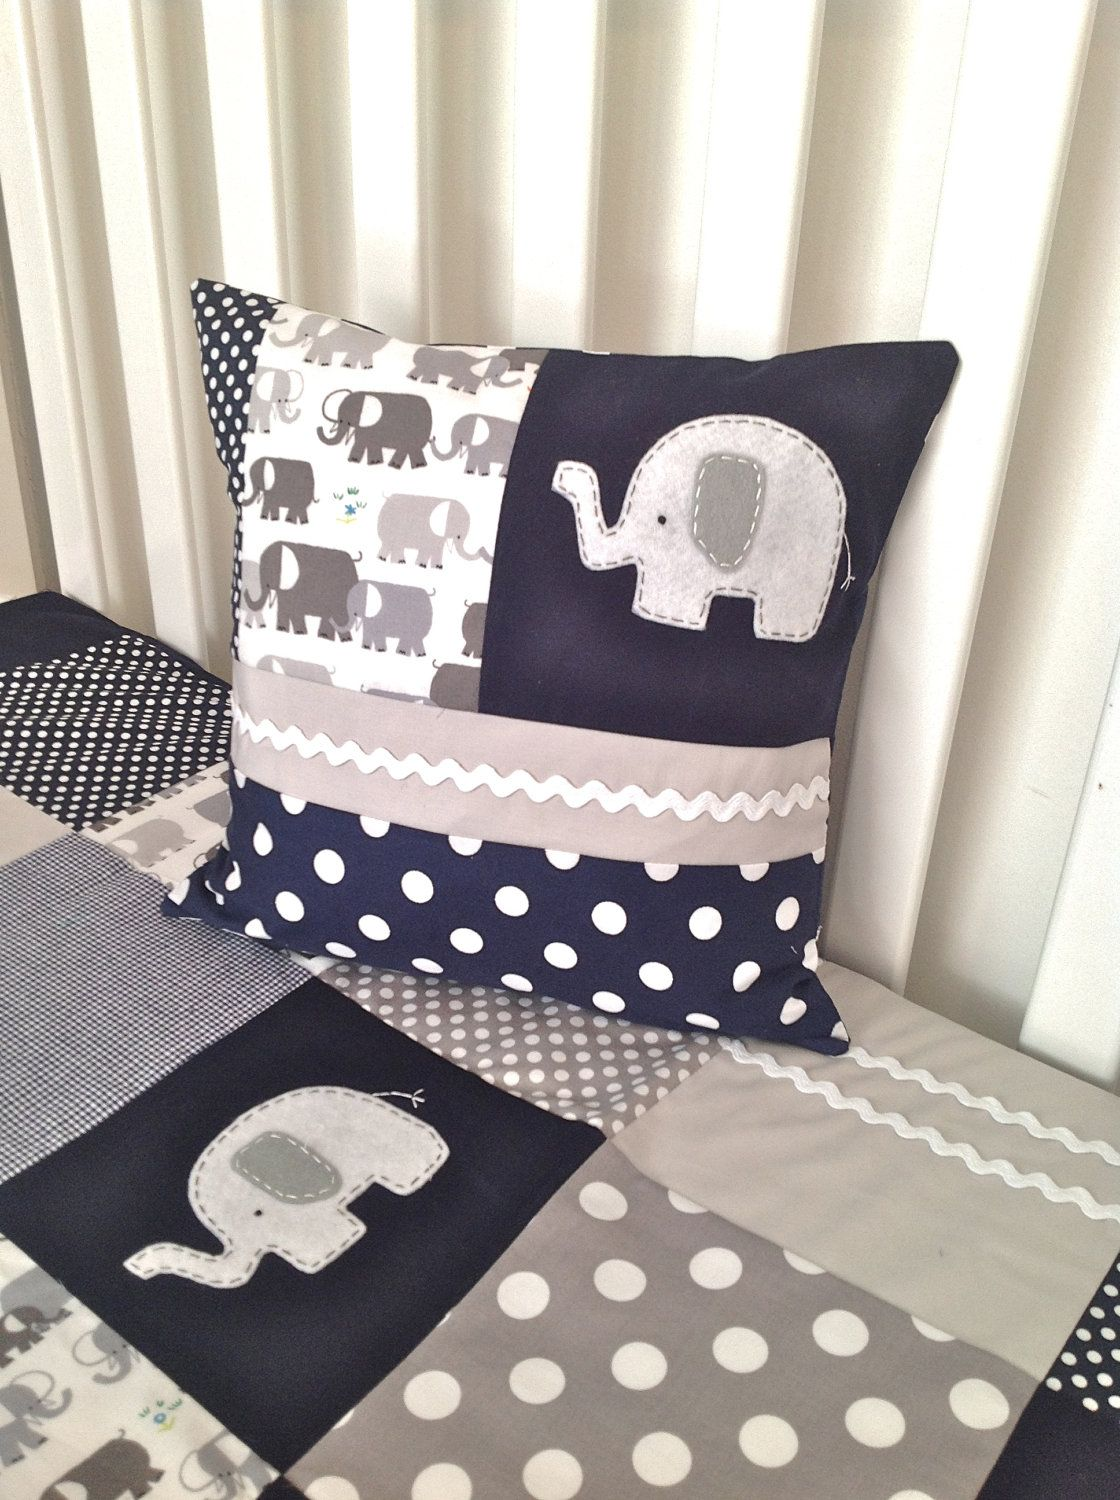 Crib pillows babies - Elephant Crib Quilt And Patchwork Pillow Cover In Navy Gray And White Ready To